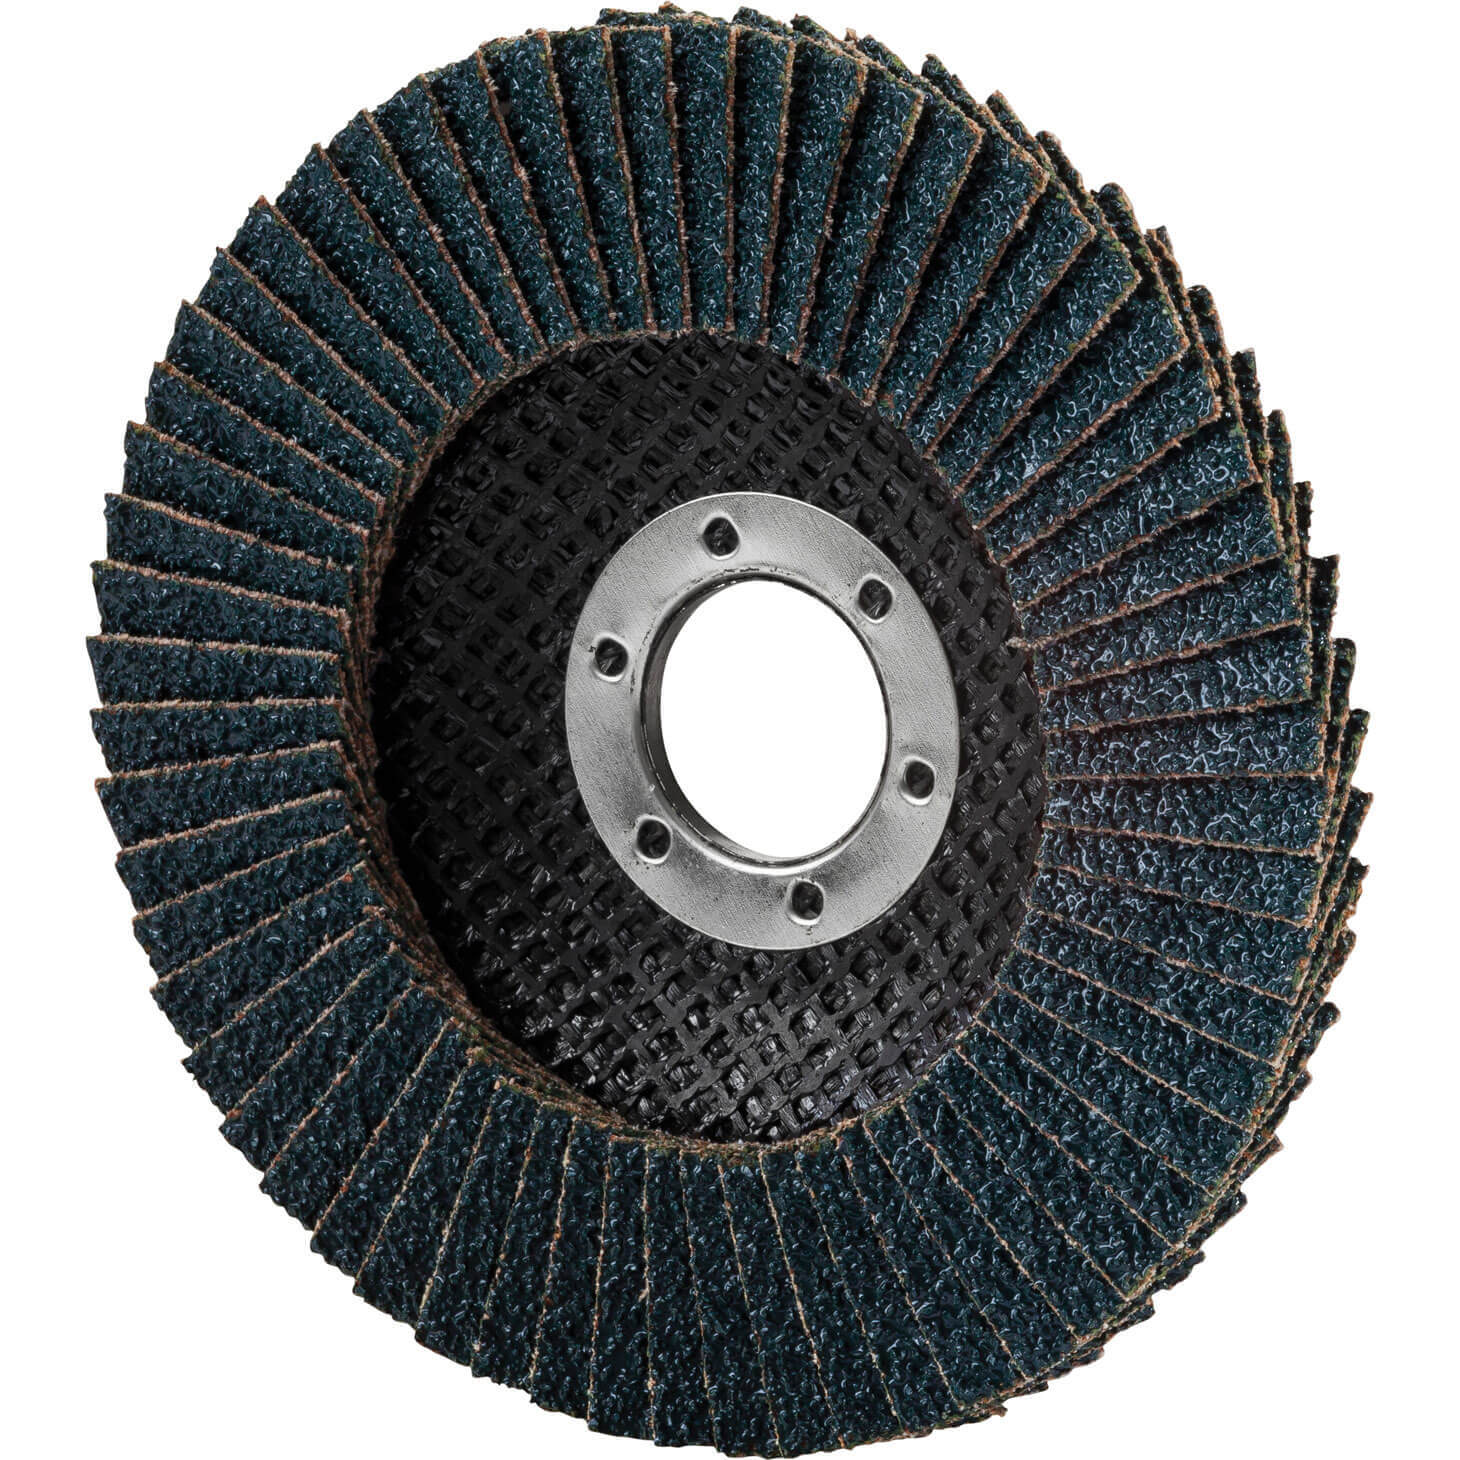 Image of Garryson DIY Zirconium Abrasive Flap Disc 115mm Coarse